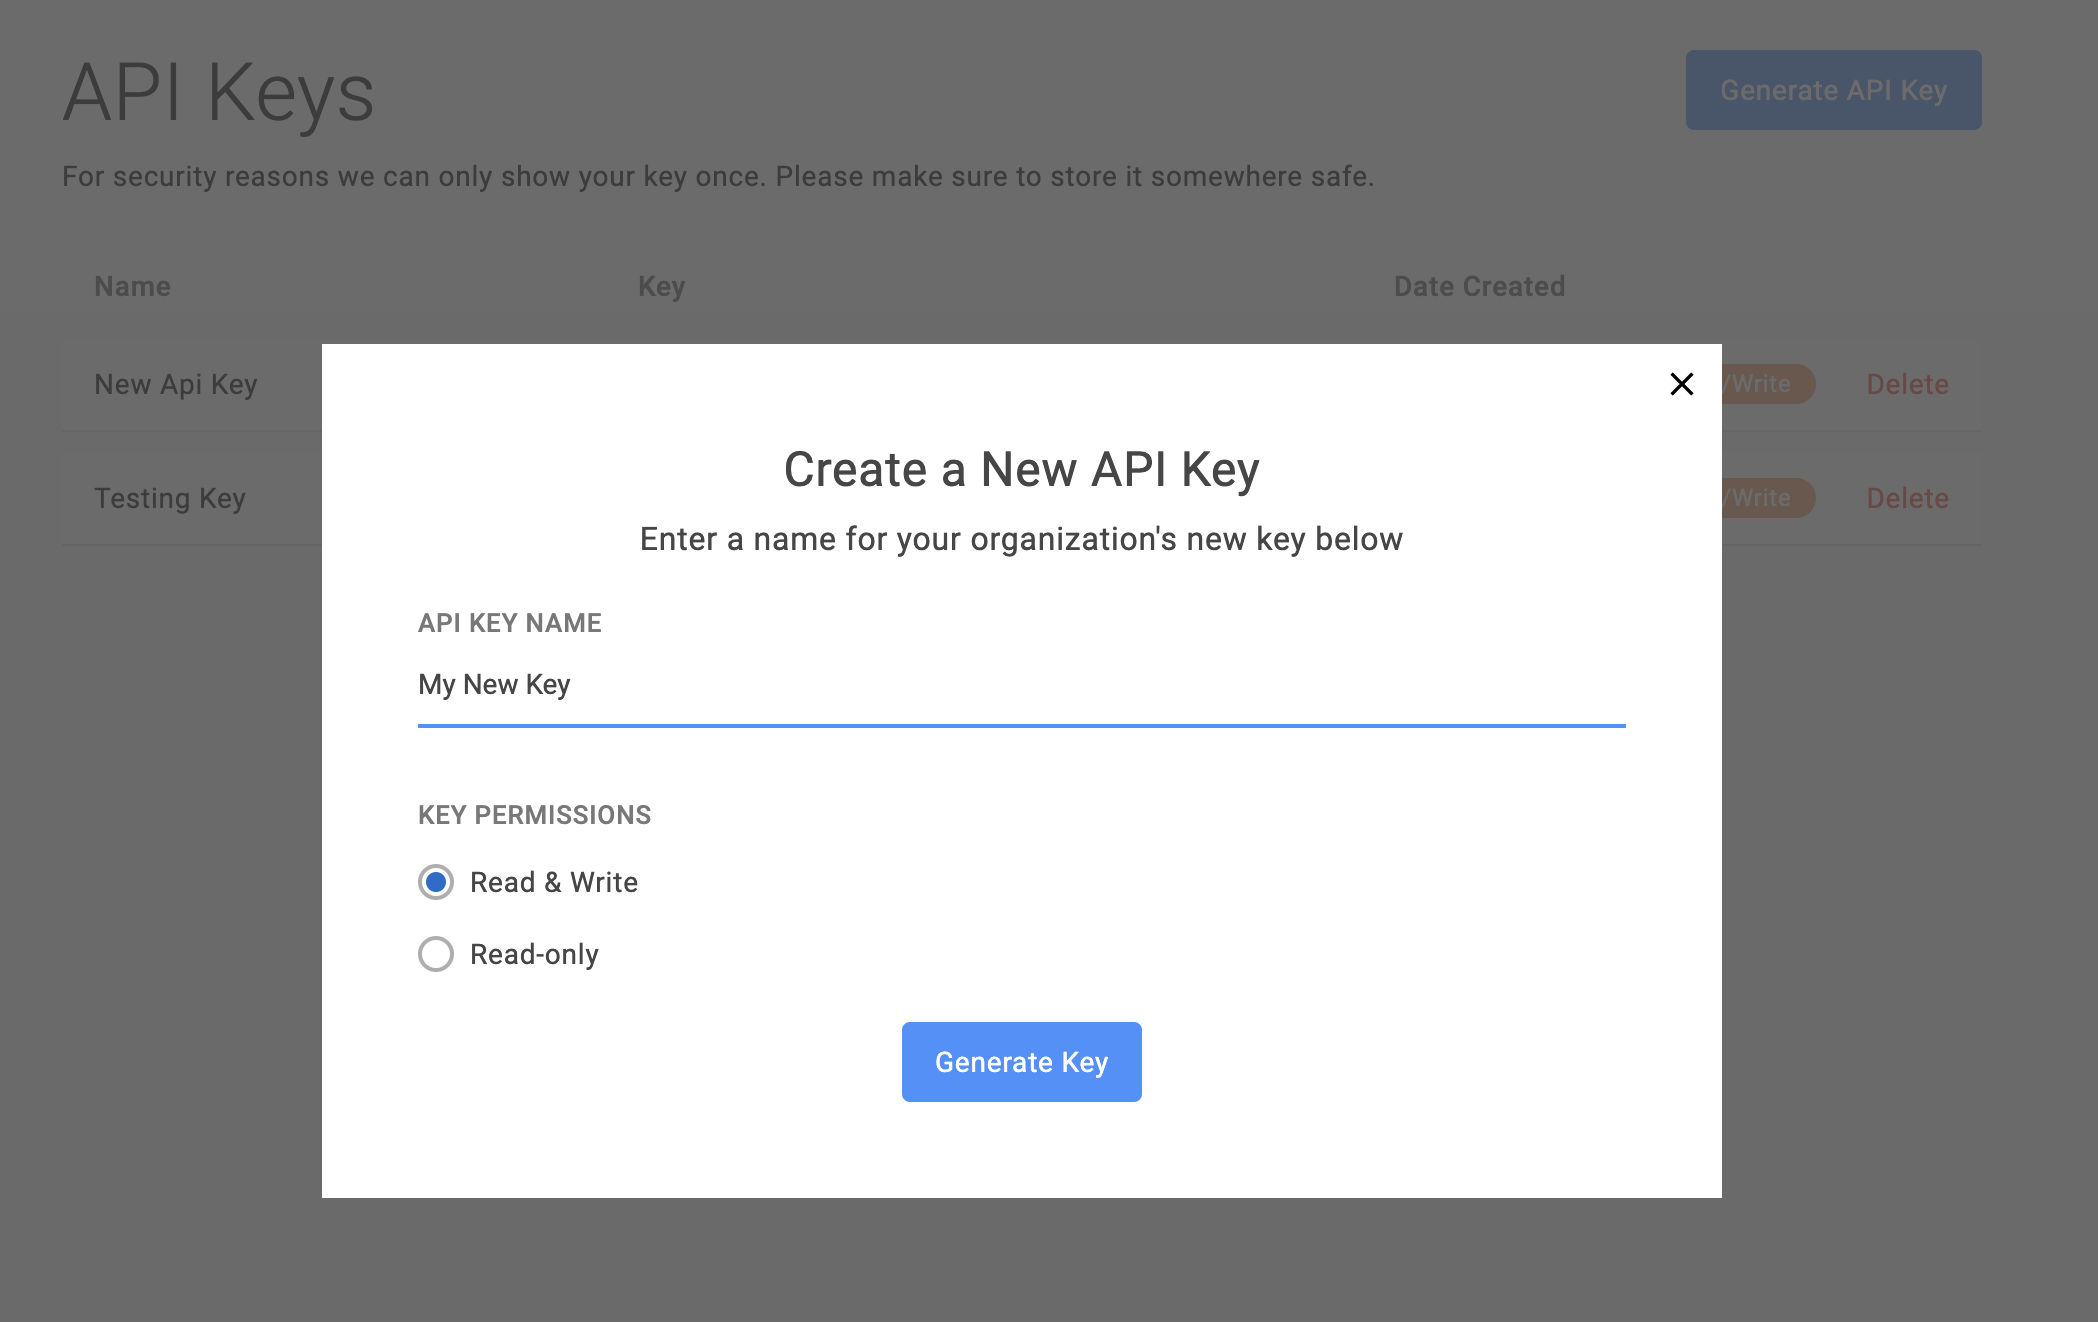 Click Generate API Key to create an API Key